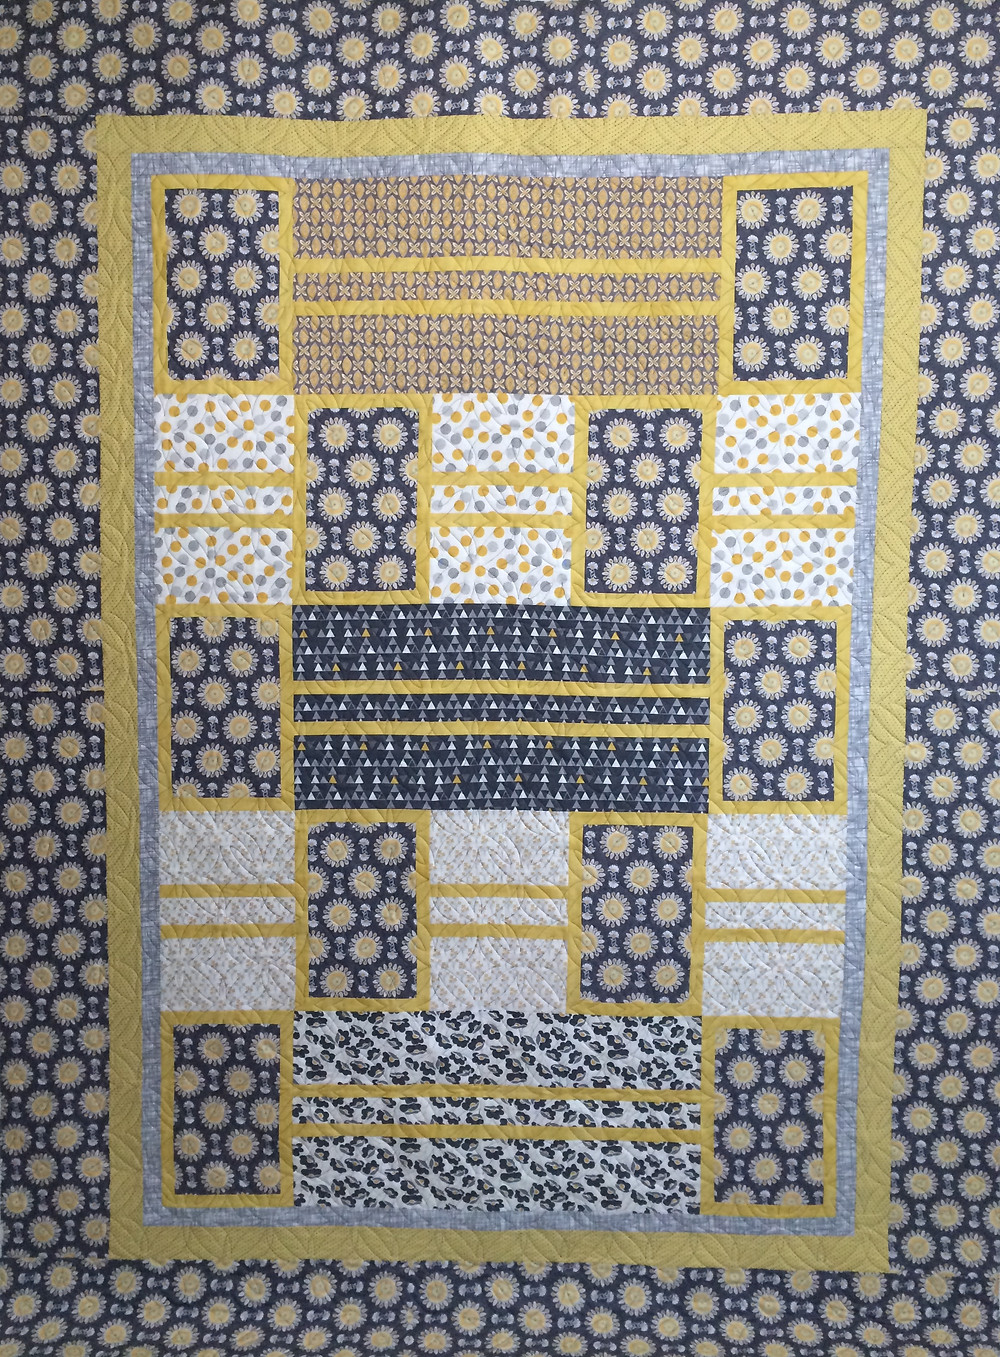 blue and yellow quilt with star burst prints